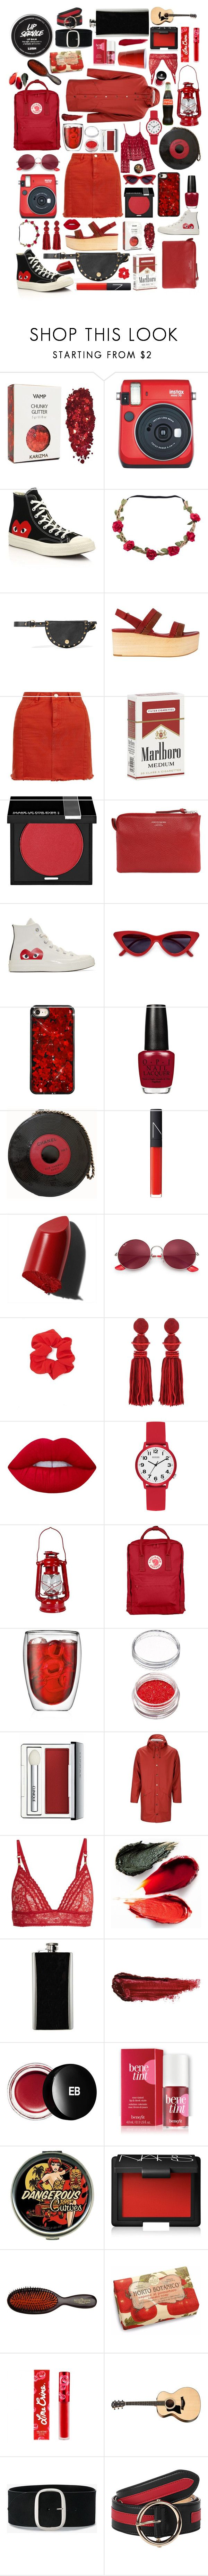 """""""Red and black festival essentials ❤️🖤x"""" by toni-grantt ❤ liked on Polyvore featuring Fujifilm, Play Comme des Garçons, See by Chloé, Whistles, MAKE UP FOR EVER, Acne Studios, Chanel, NARS Cosmetics, Bobbi Brown Cosmetics and Ray-Ban"""